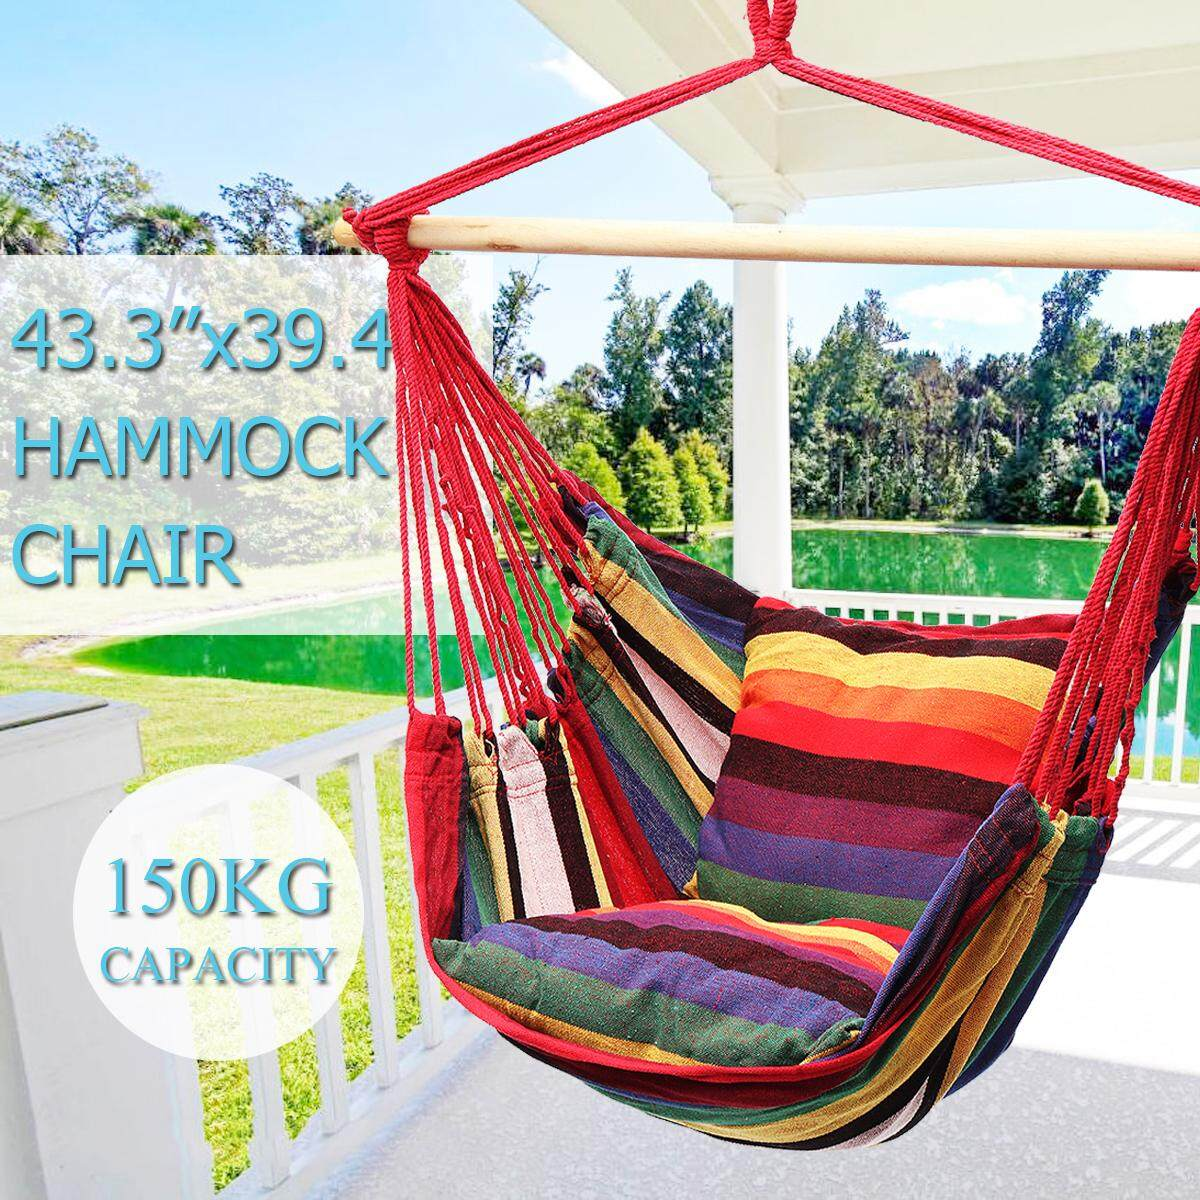 3PCS 43.3x39.4 Hanging Hammock Chair Swing Outdoor Indoor Camping Garden - intl